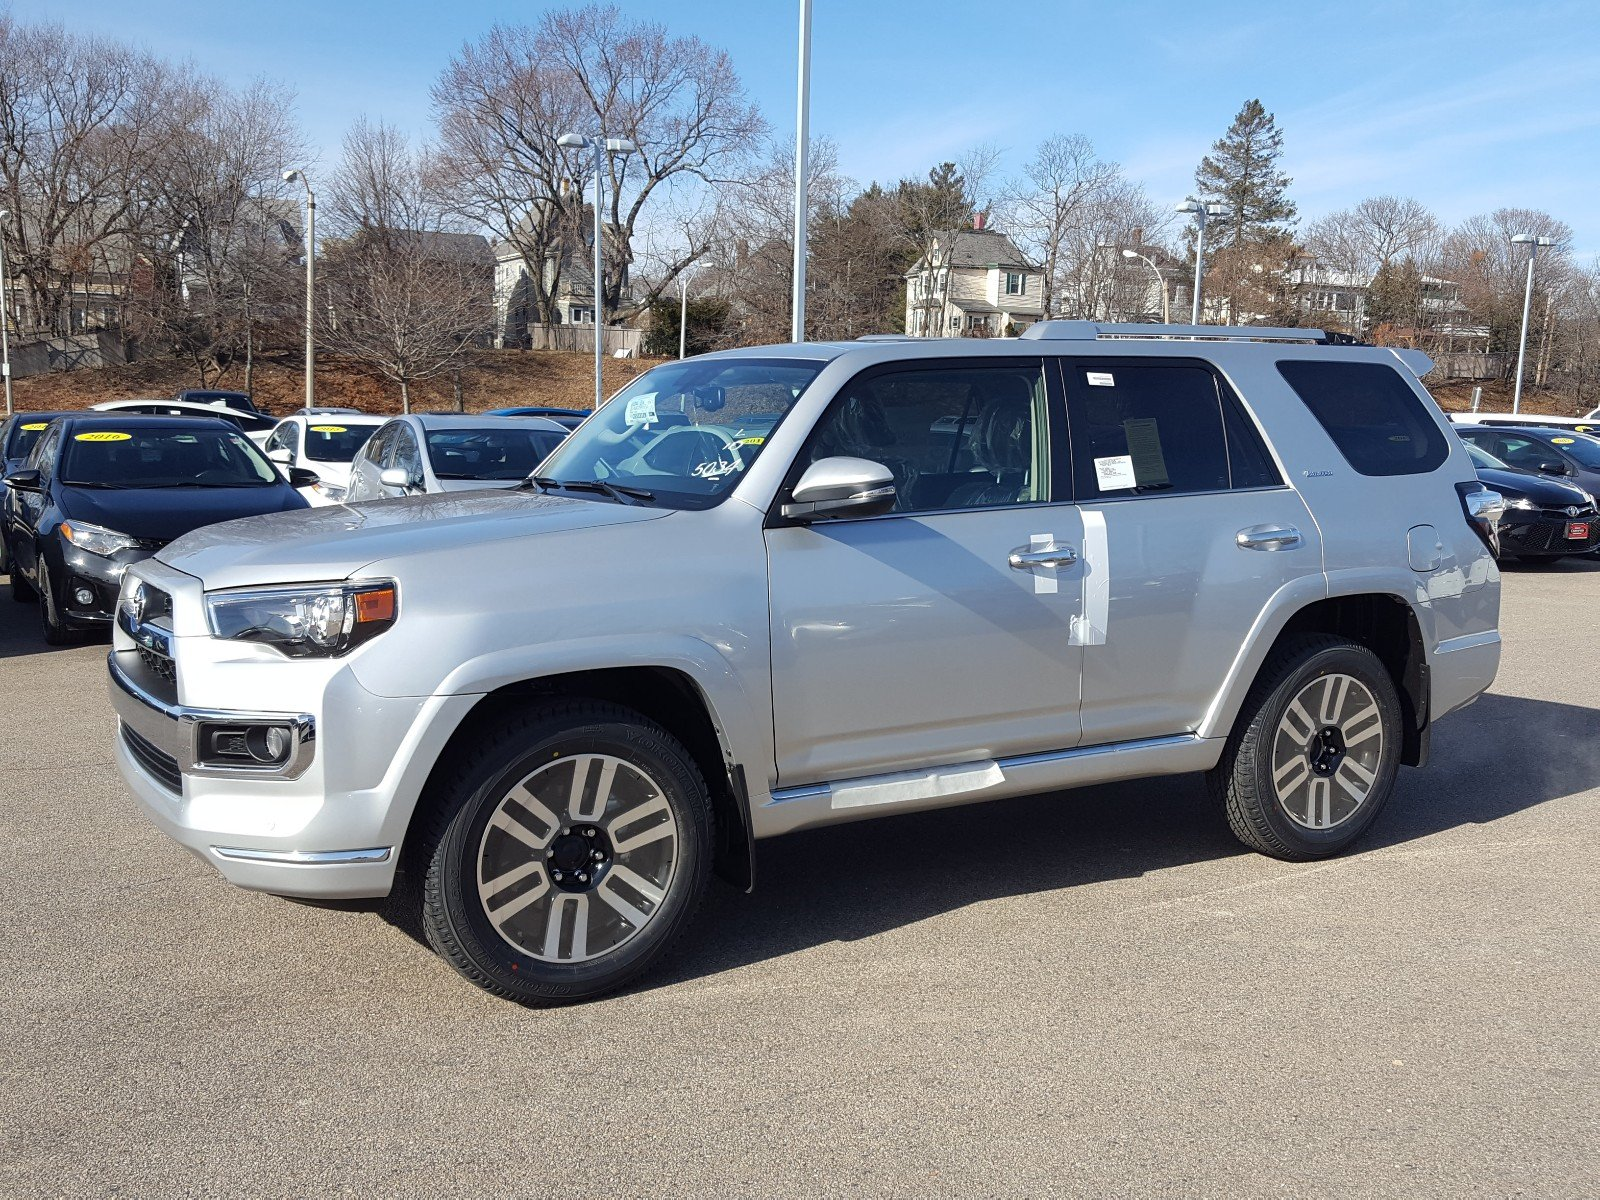 11ac19595f078b528900427698f62ef9 Great Description About Used toyota 4runner for Sale